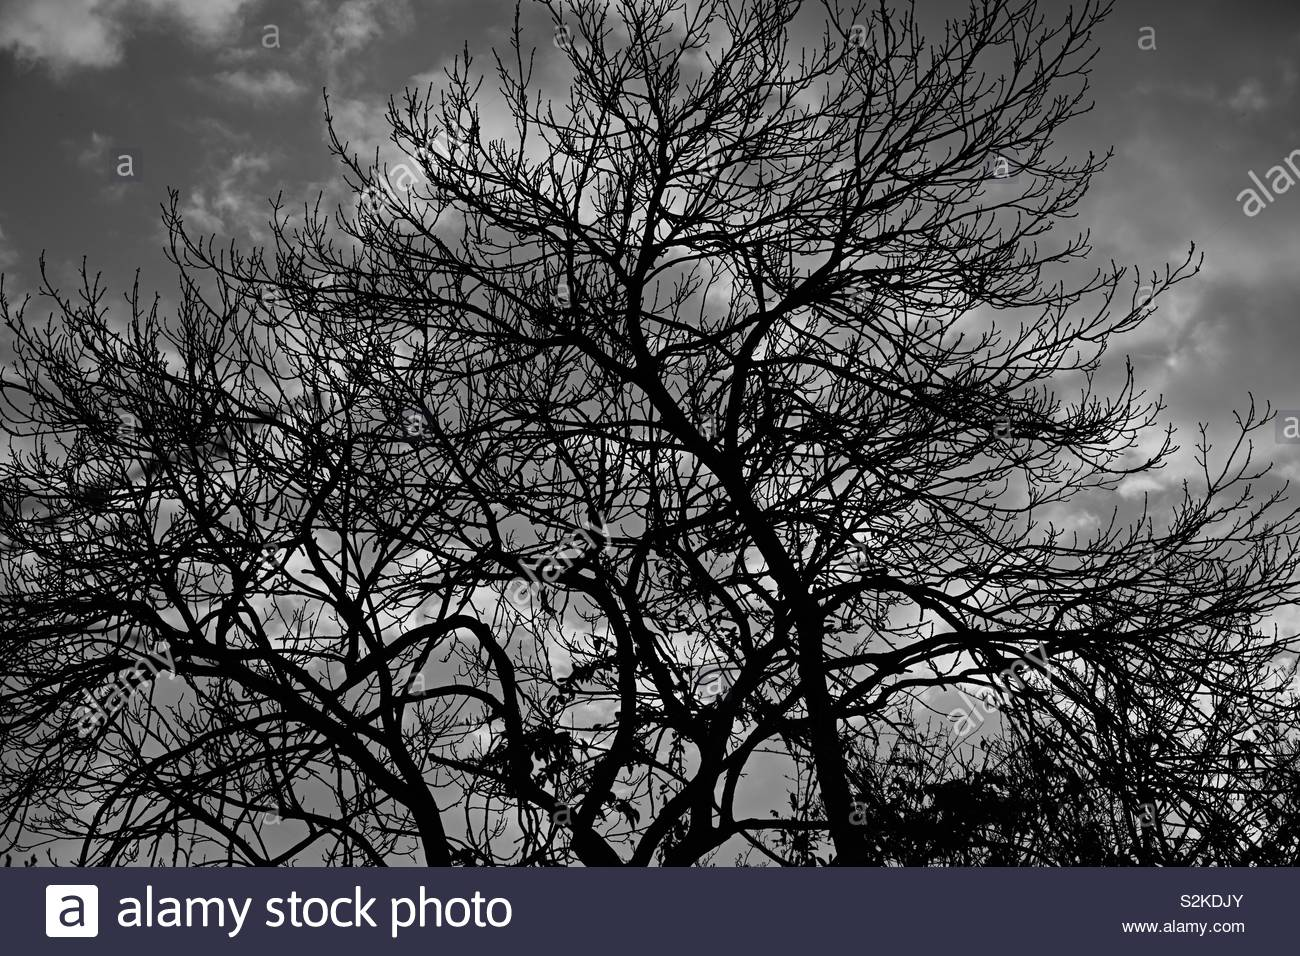 Black and white image of a leafless tree against the sky. - Stock Image